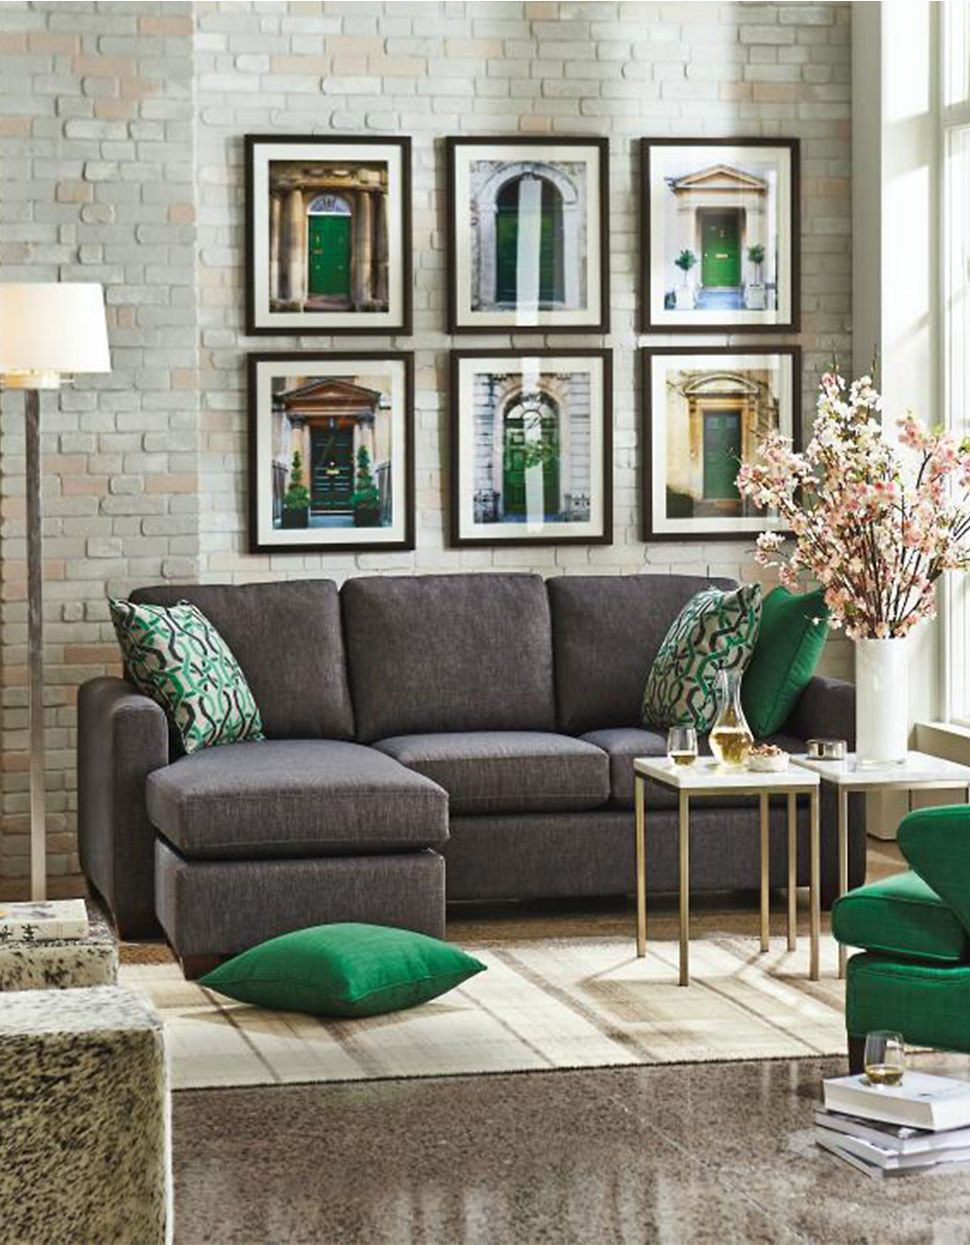 Black/charcoal, Green And Gold / Andrea Sectional Sofa With Chaise At  Hudsonu0027s Bay